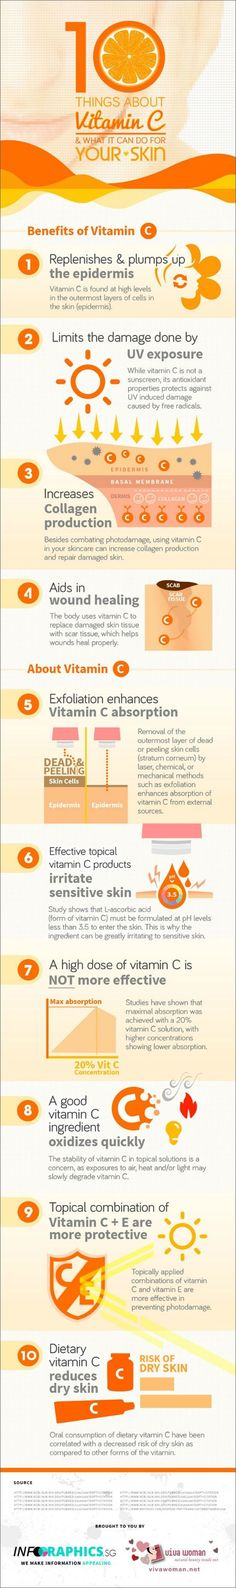 vitamin c for skincare Infographics: 10 things about vitamin C for your skin